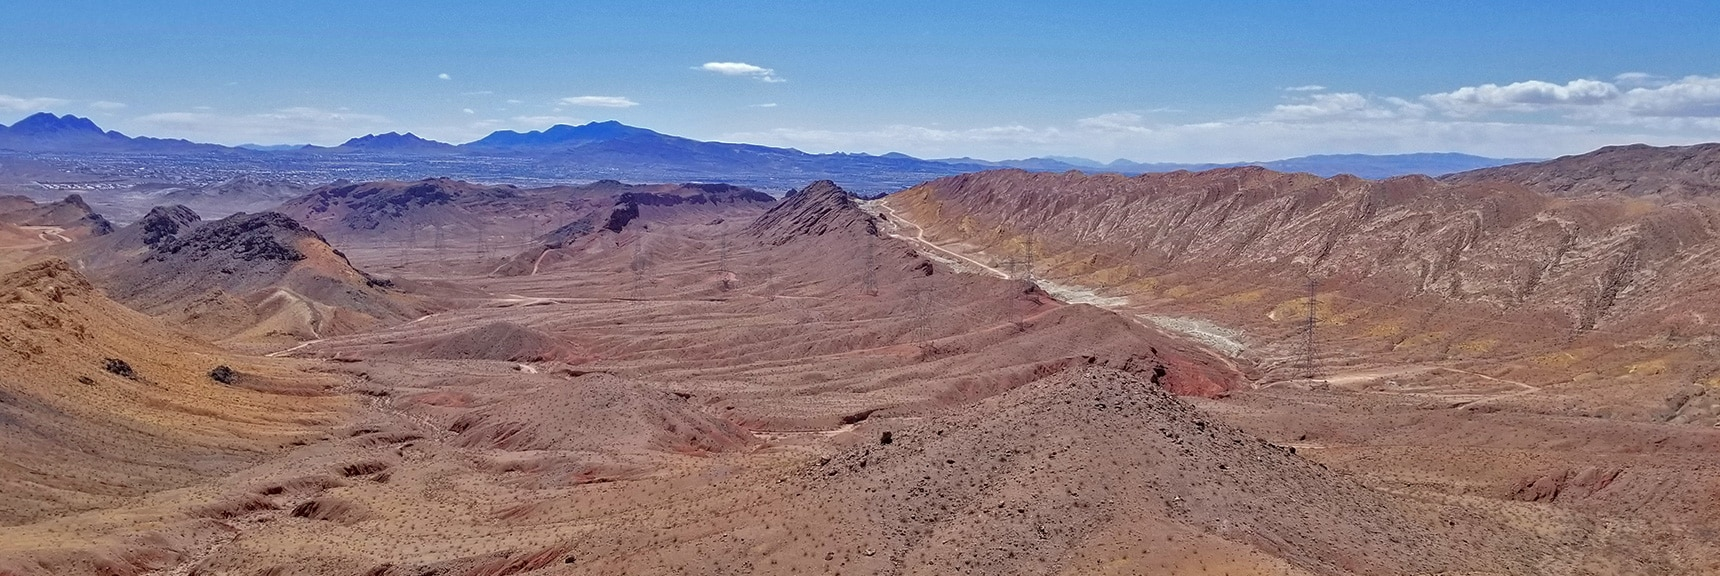 View South from Midway Down the SW Traverse Route | Lava Butte | Lake Mead National Recreation Area, Nevada